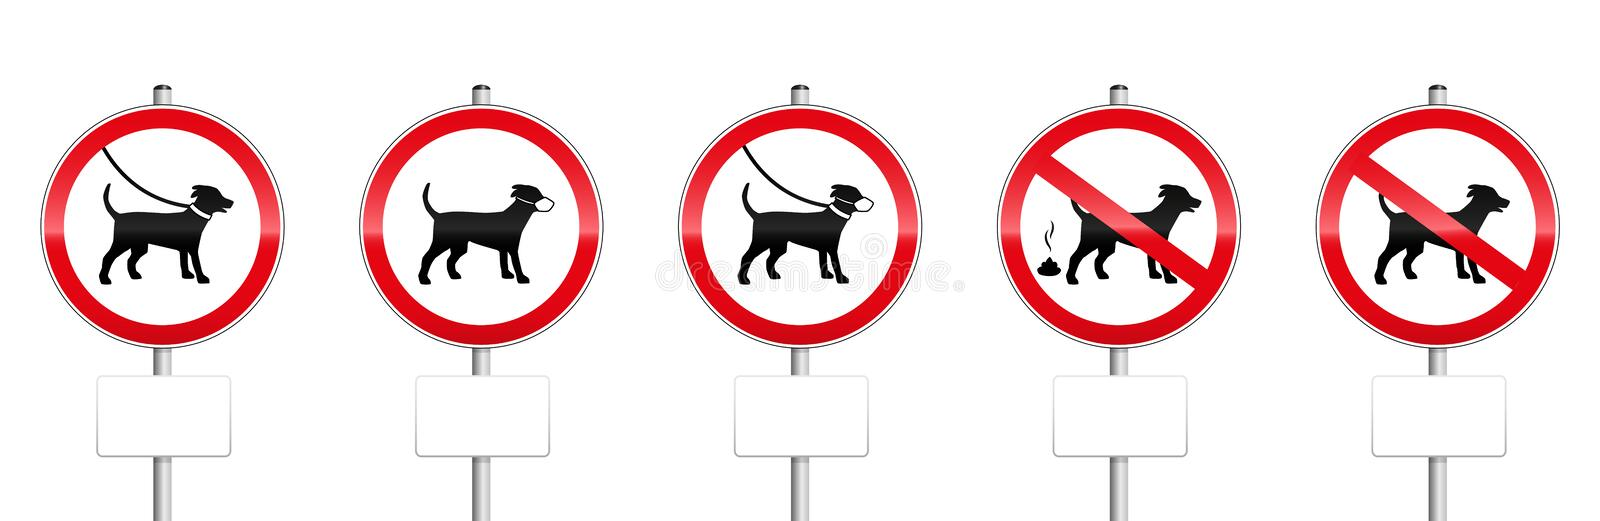 Dogs Mandatory Signs With Blank Panels stock illustration